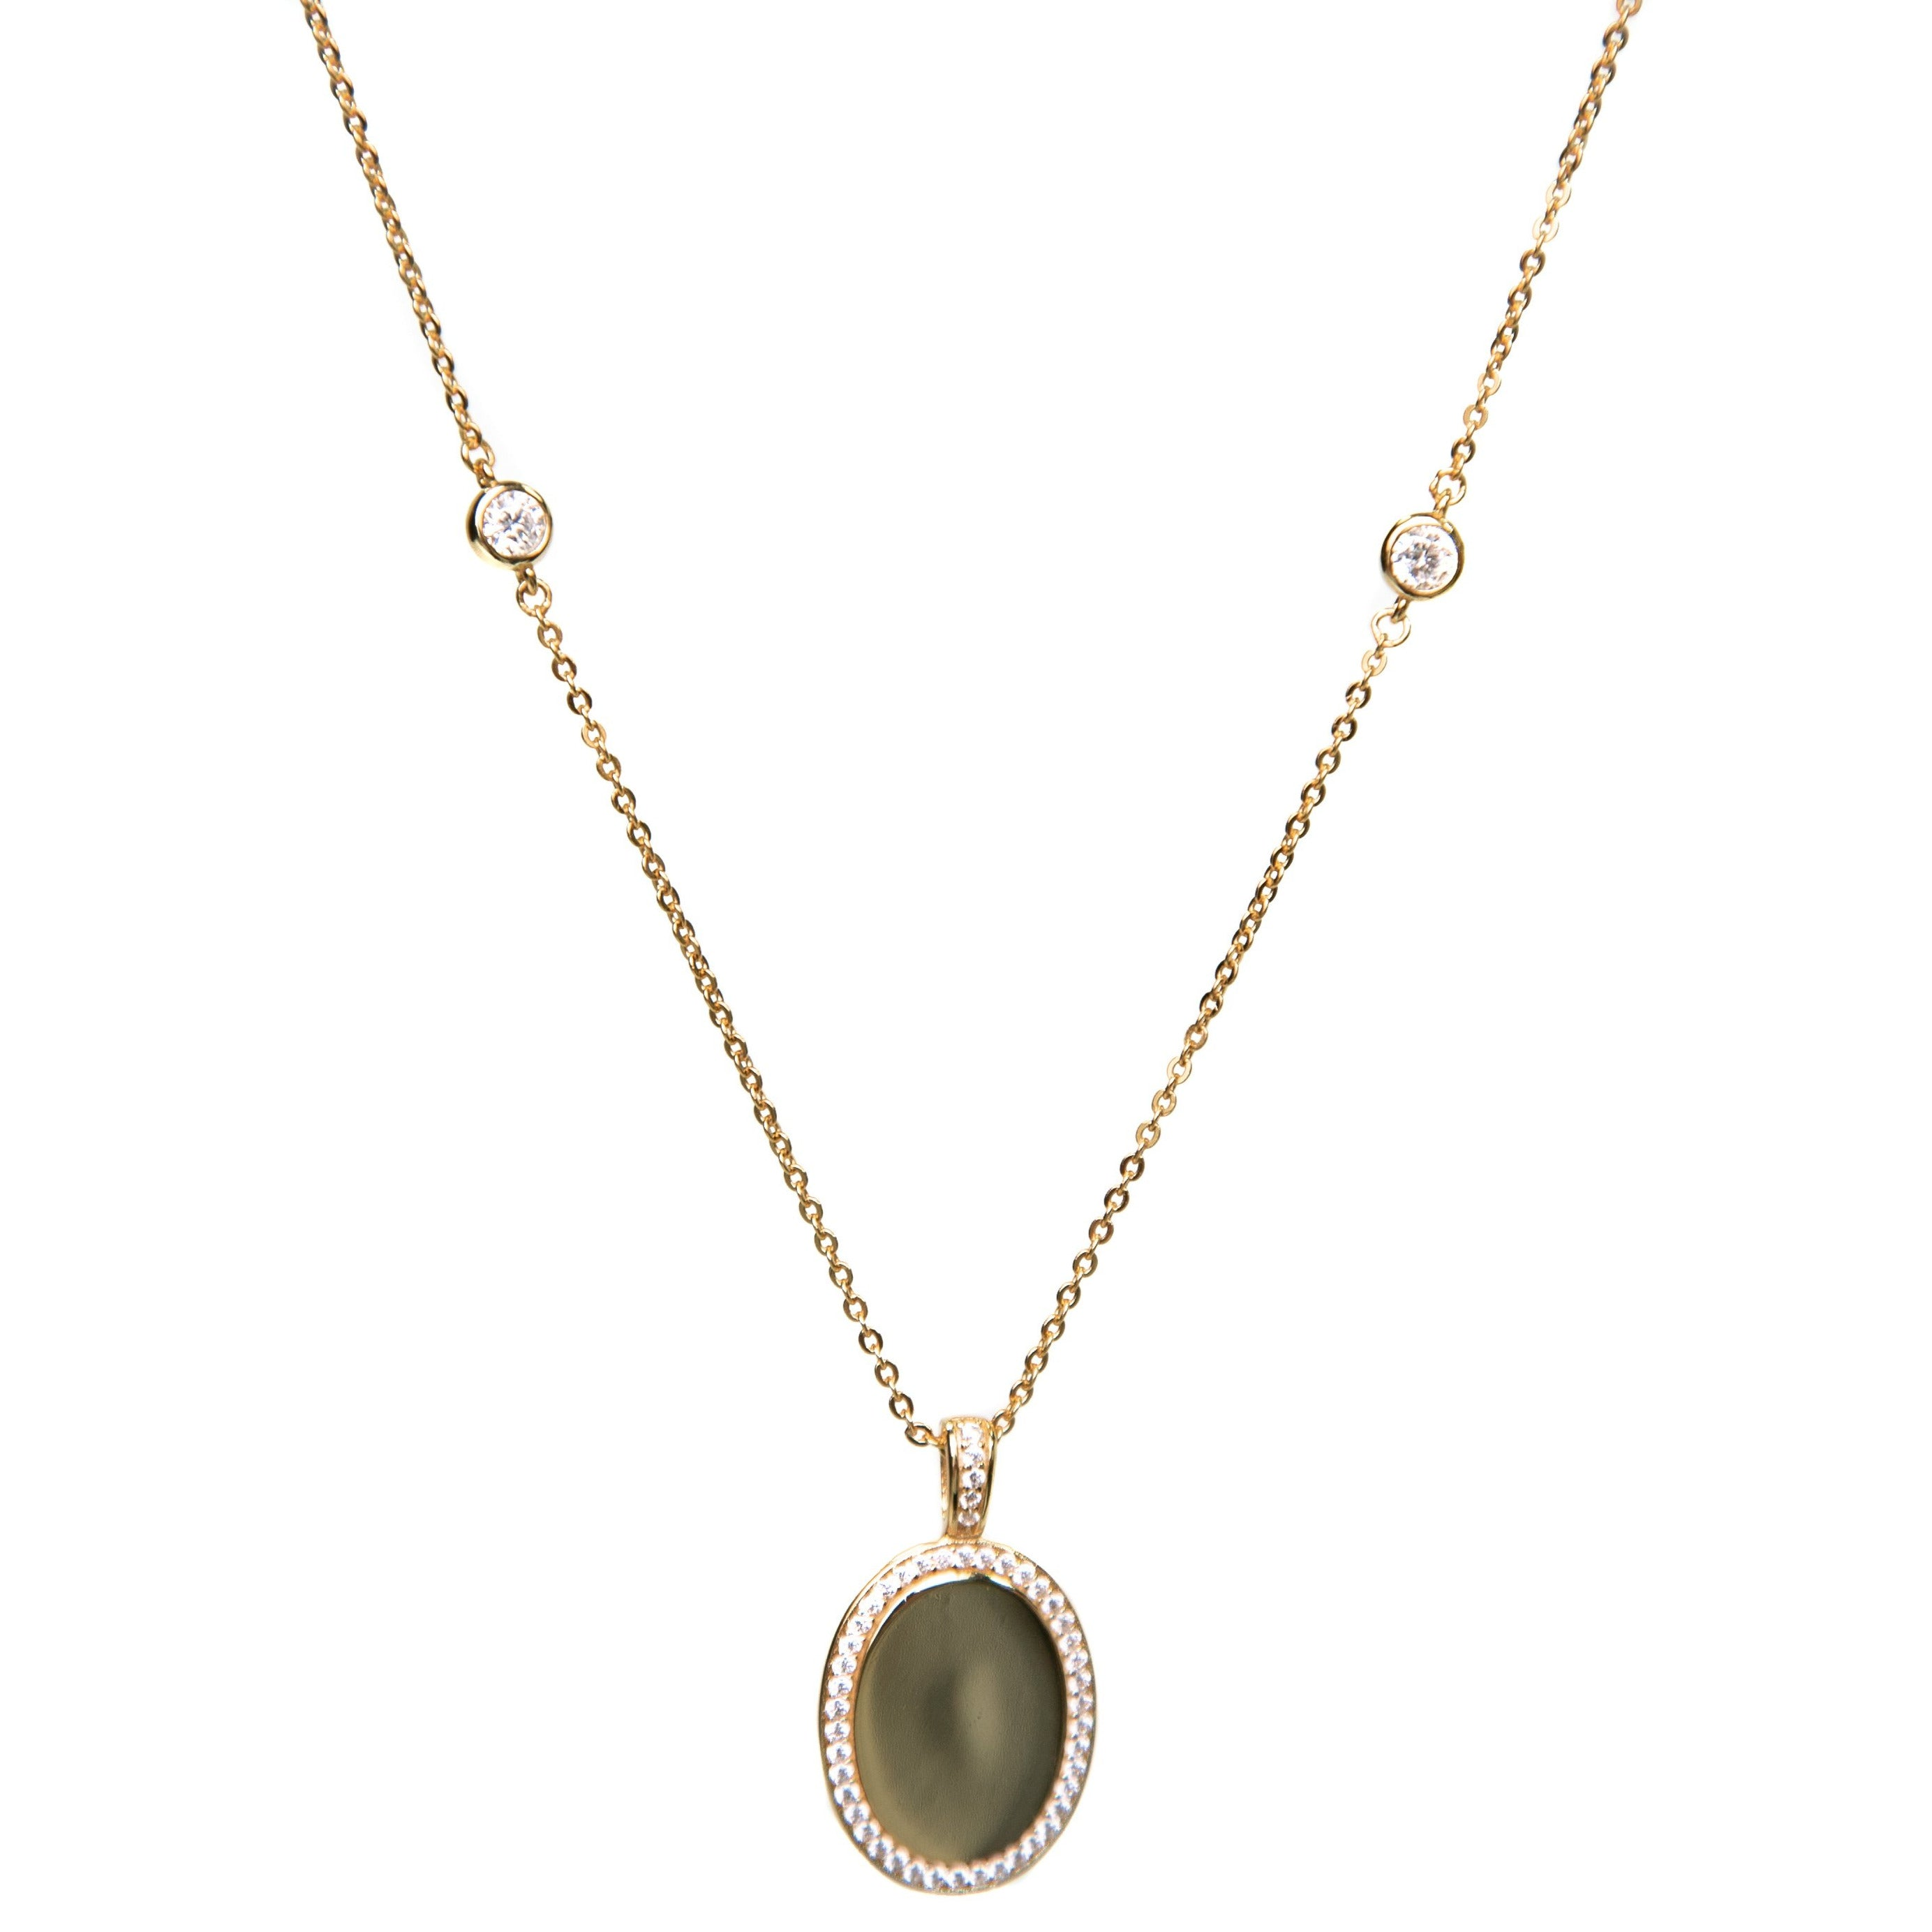 LEV Necklace